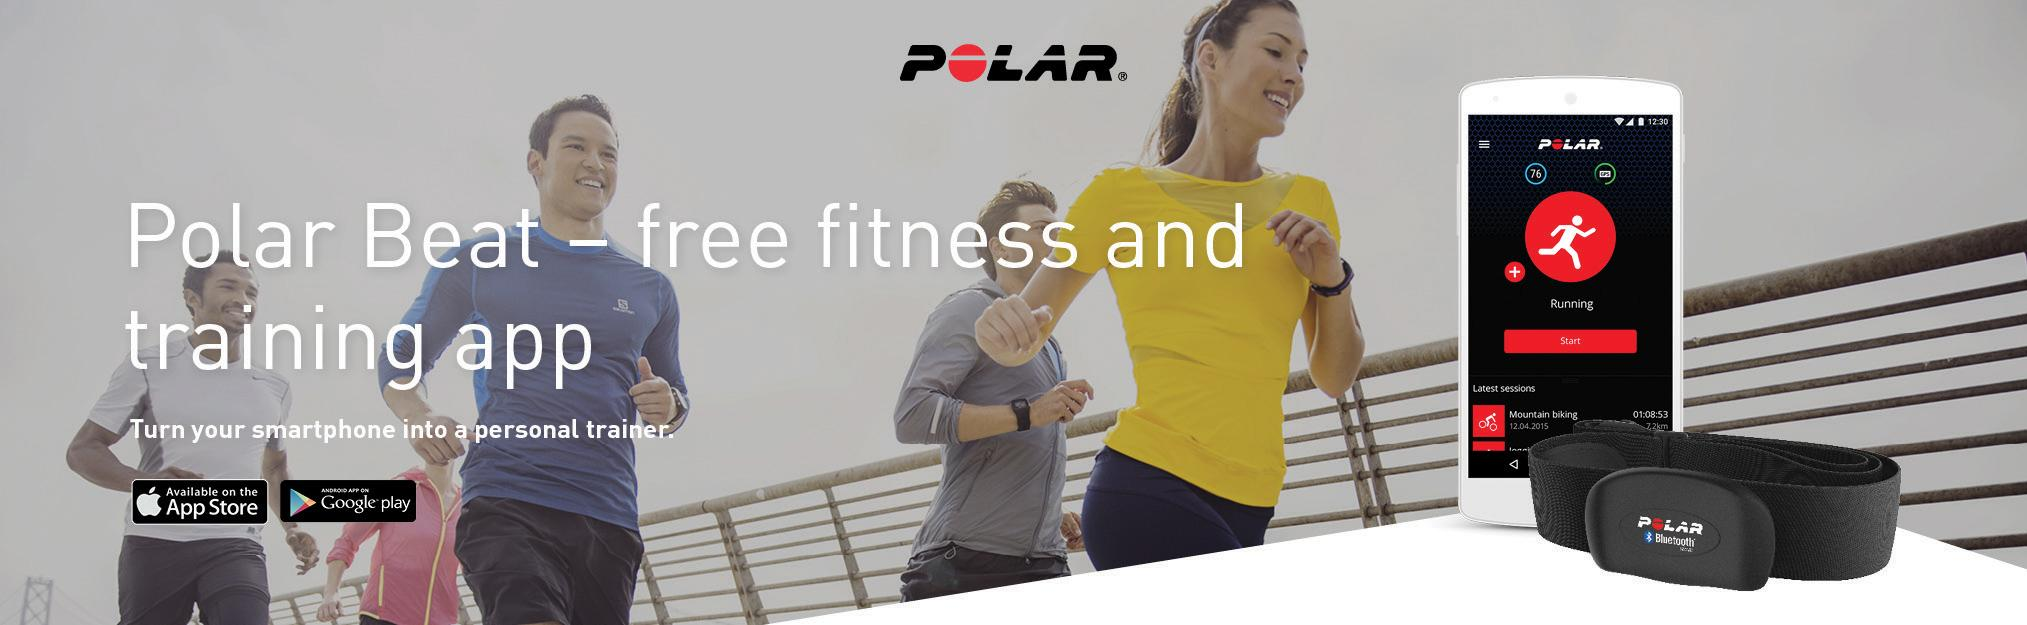 92044305-P Outdoor Recreation Polar H7 Bluetooth Heart Rate Sensor & Fitness Tracker Polar Electro Inc